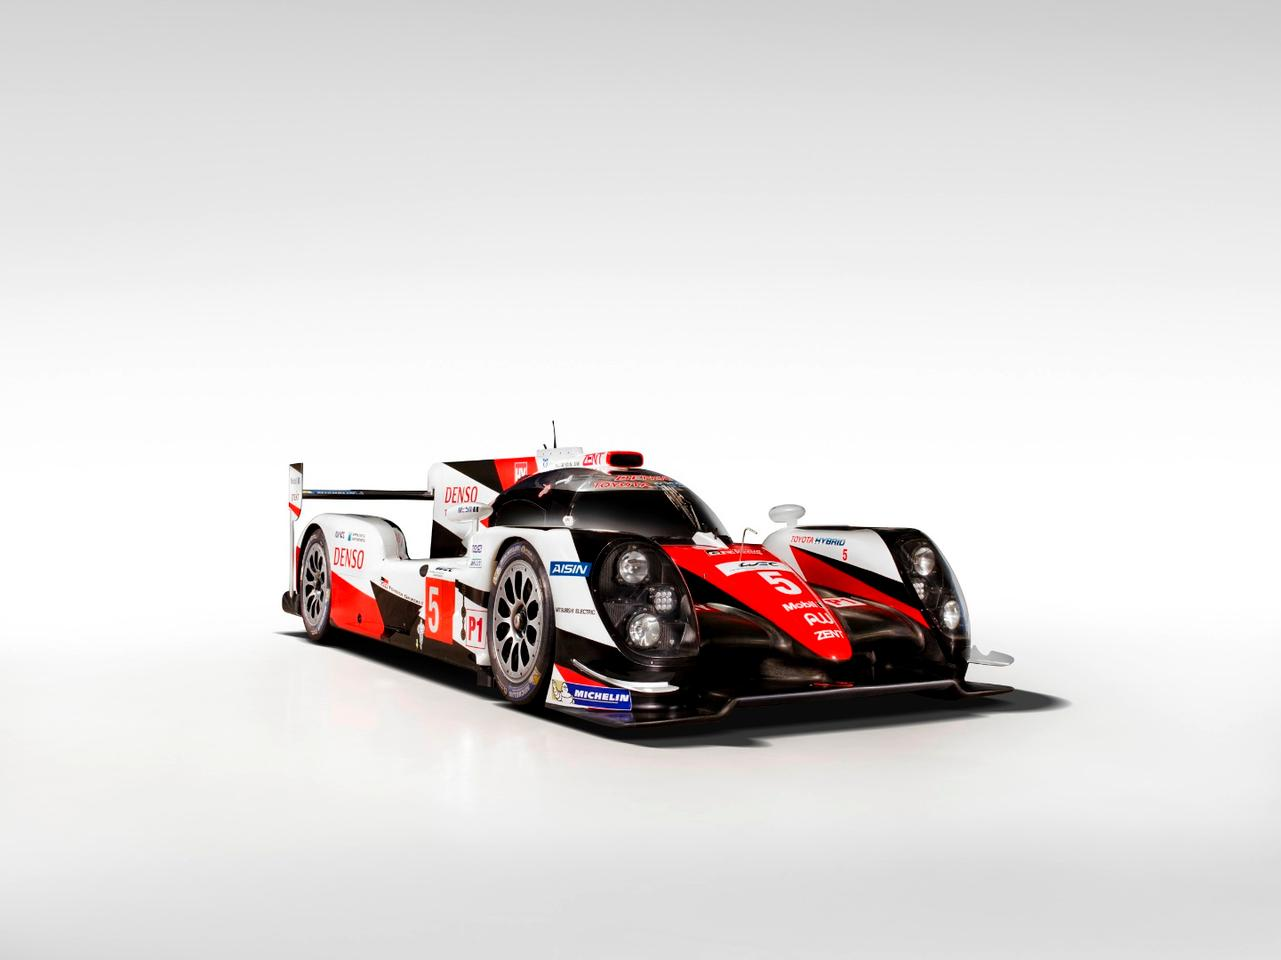 Toyota's TS050 will face off with the Audi R18 and Porsche 919 in the World Endurance Championship this year